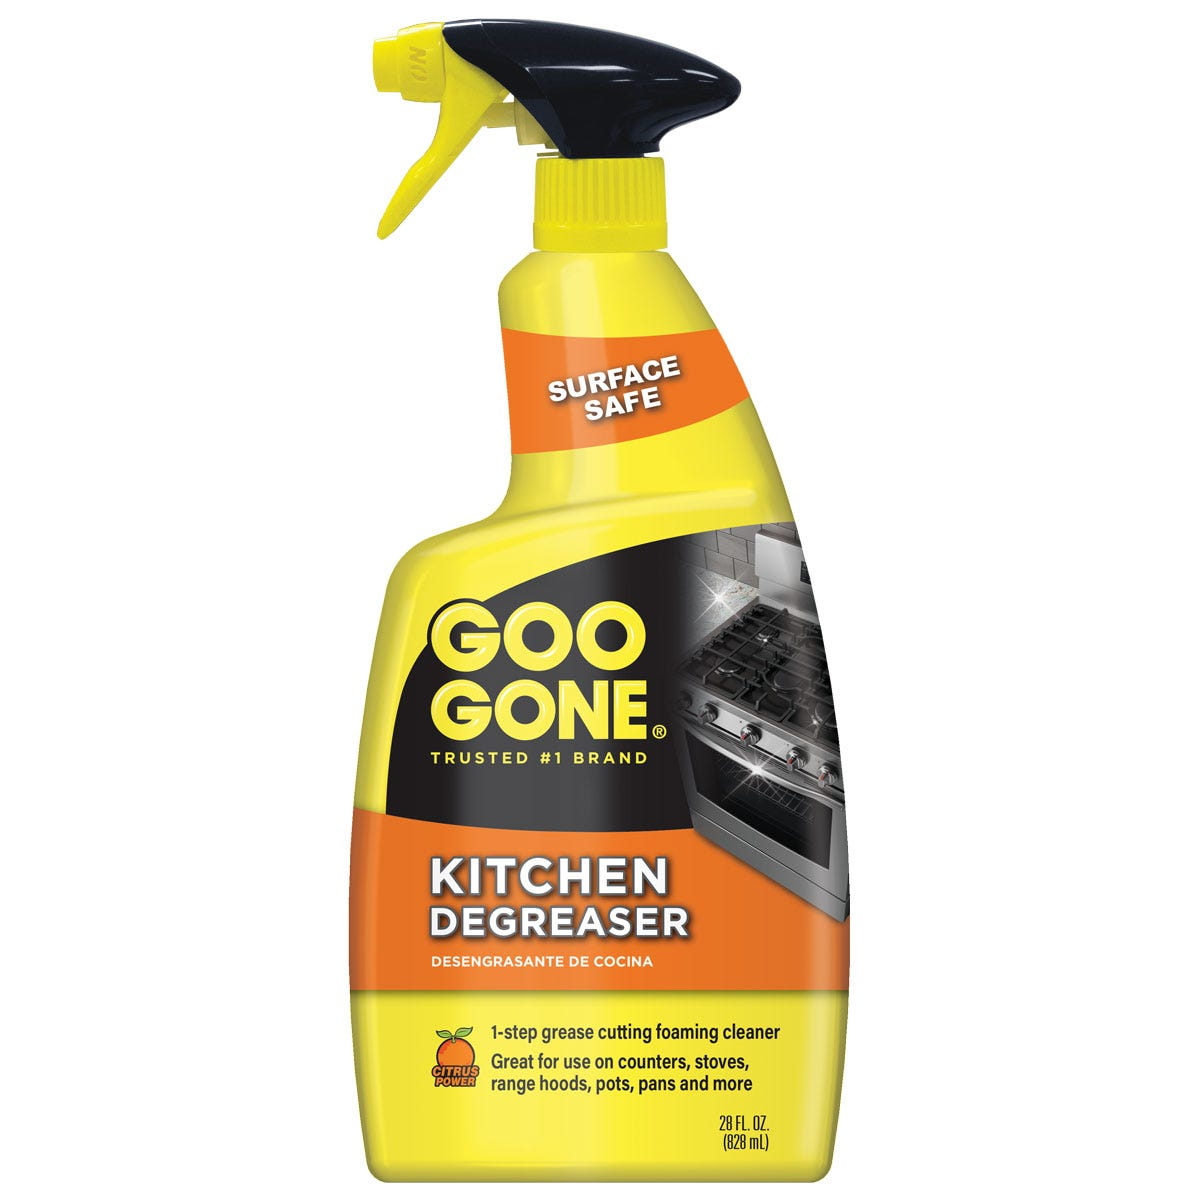 https://googone.com/media/catalog/product/g/o/goo-gone-kitchen-degreaser_front.jpg